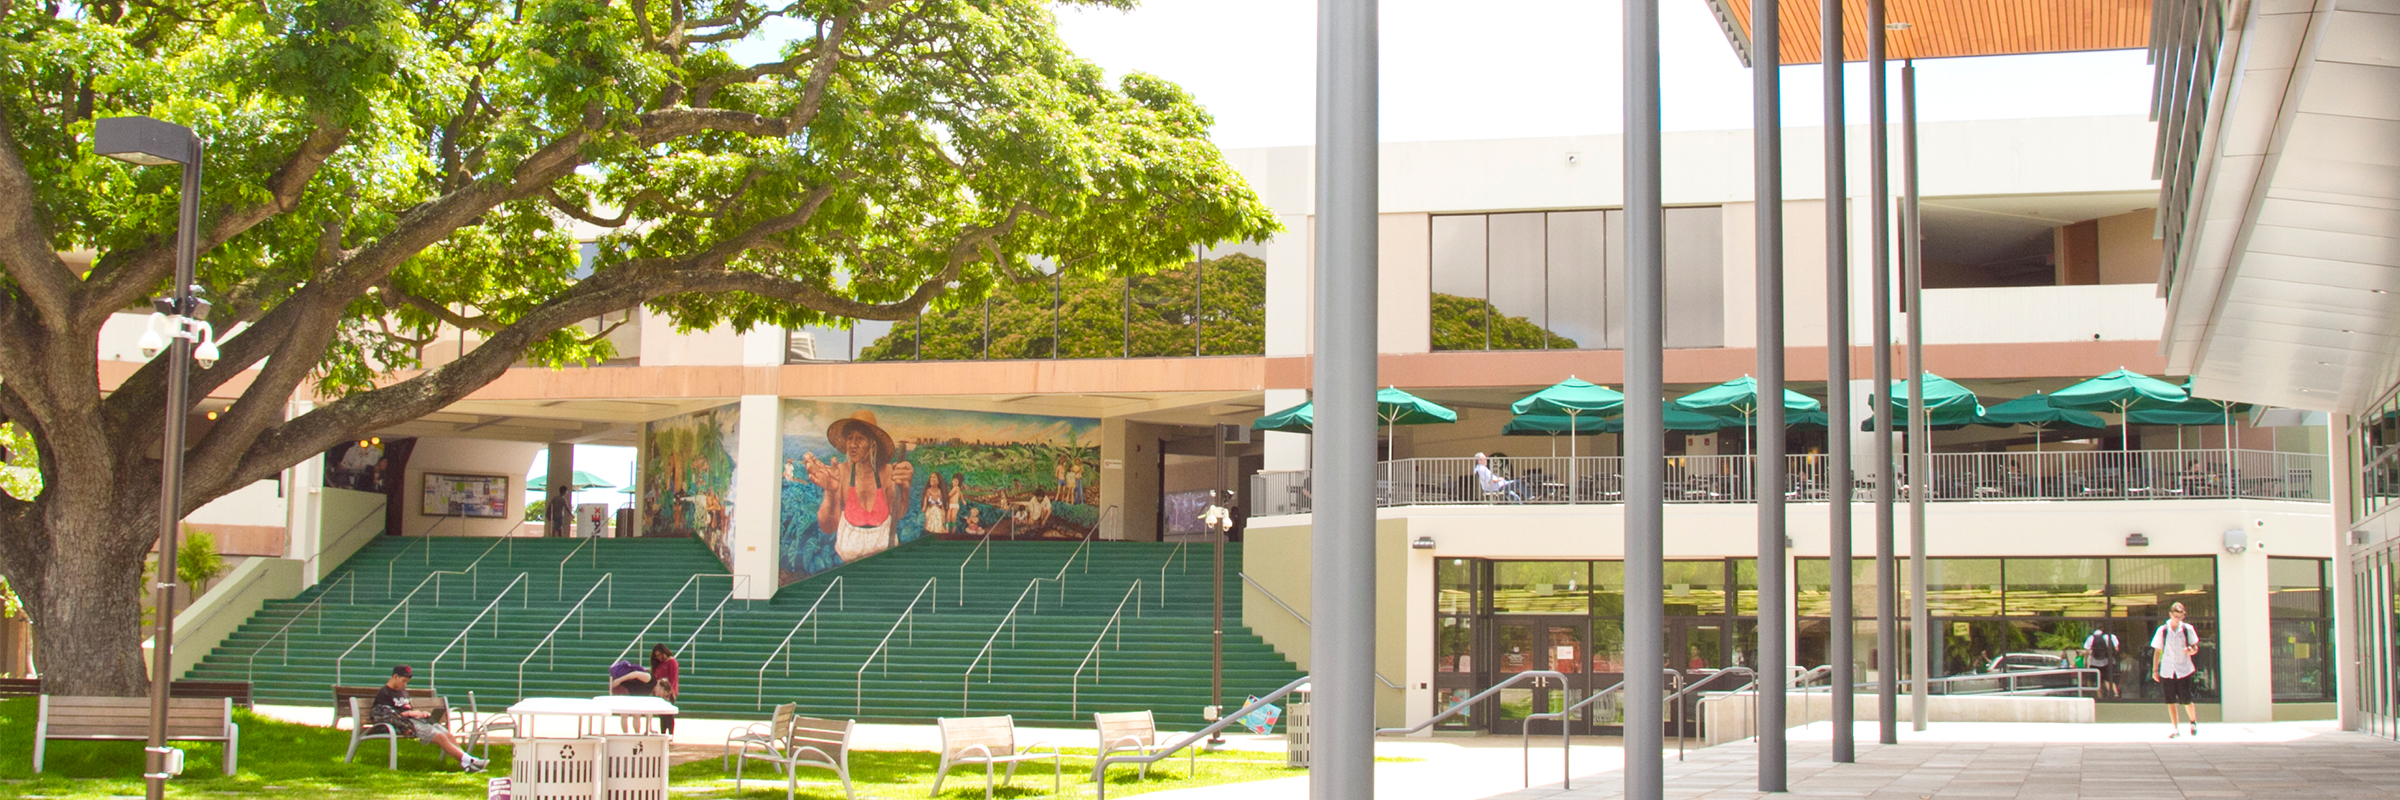 Overview of campus center, UH bookstore, coffee shops with outdoor sitting area